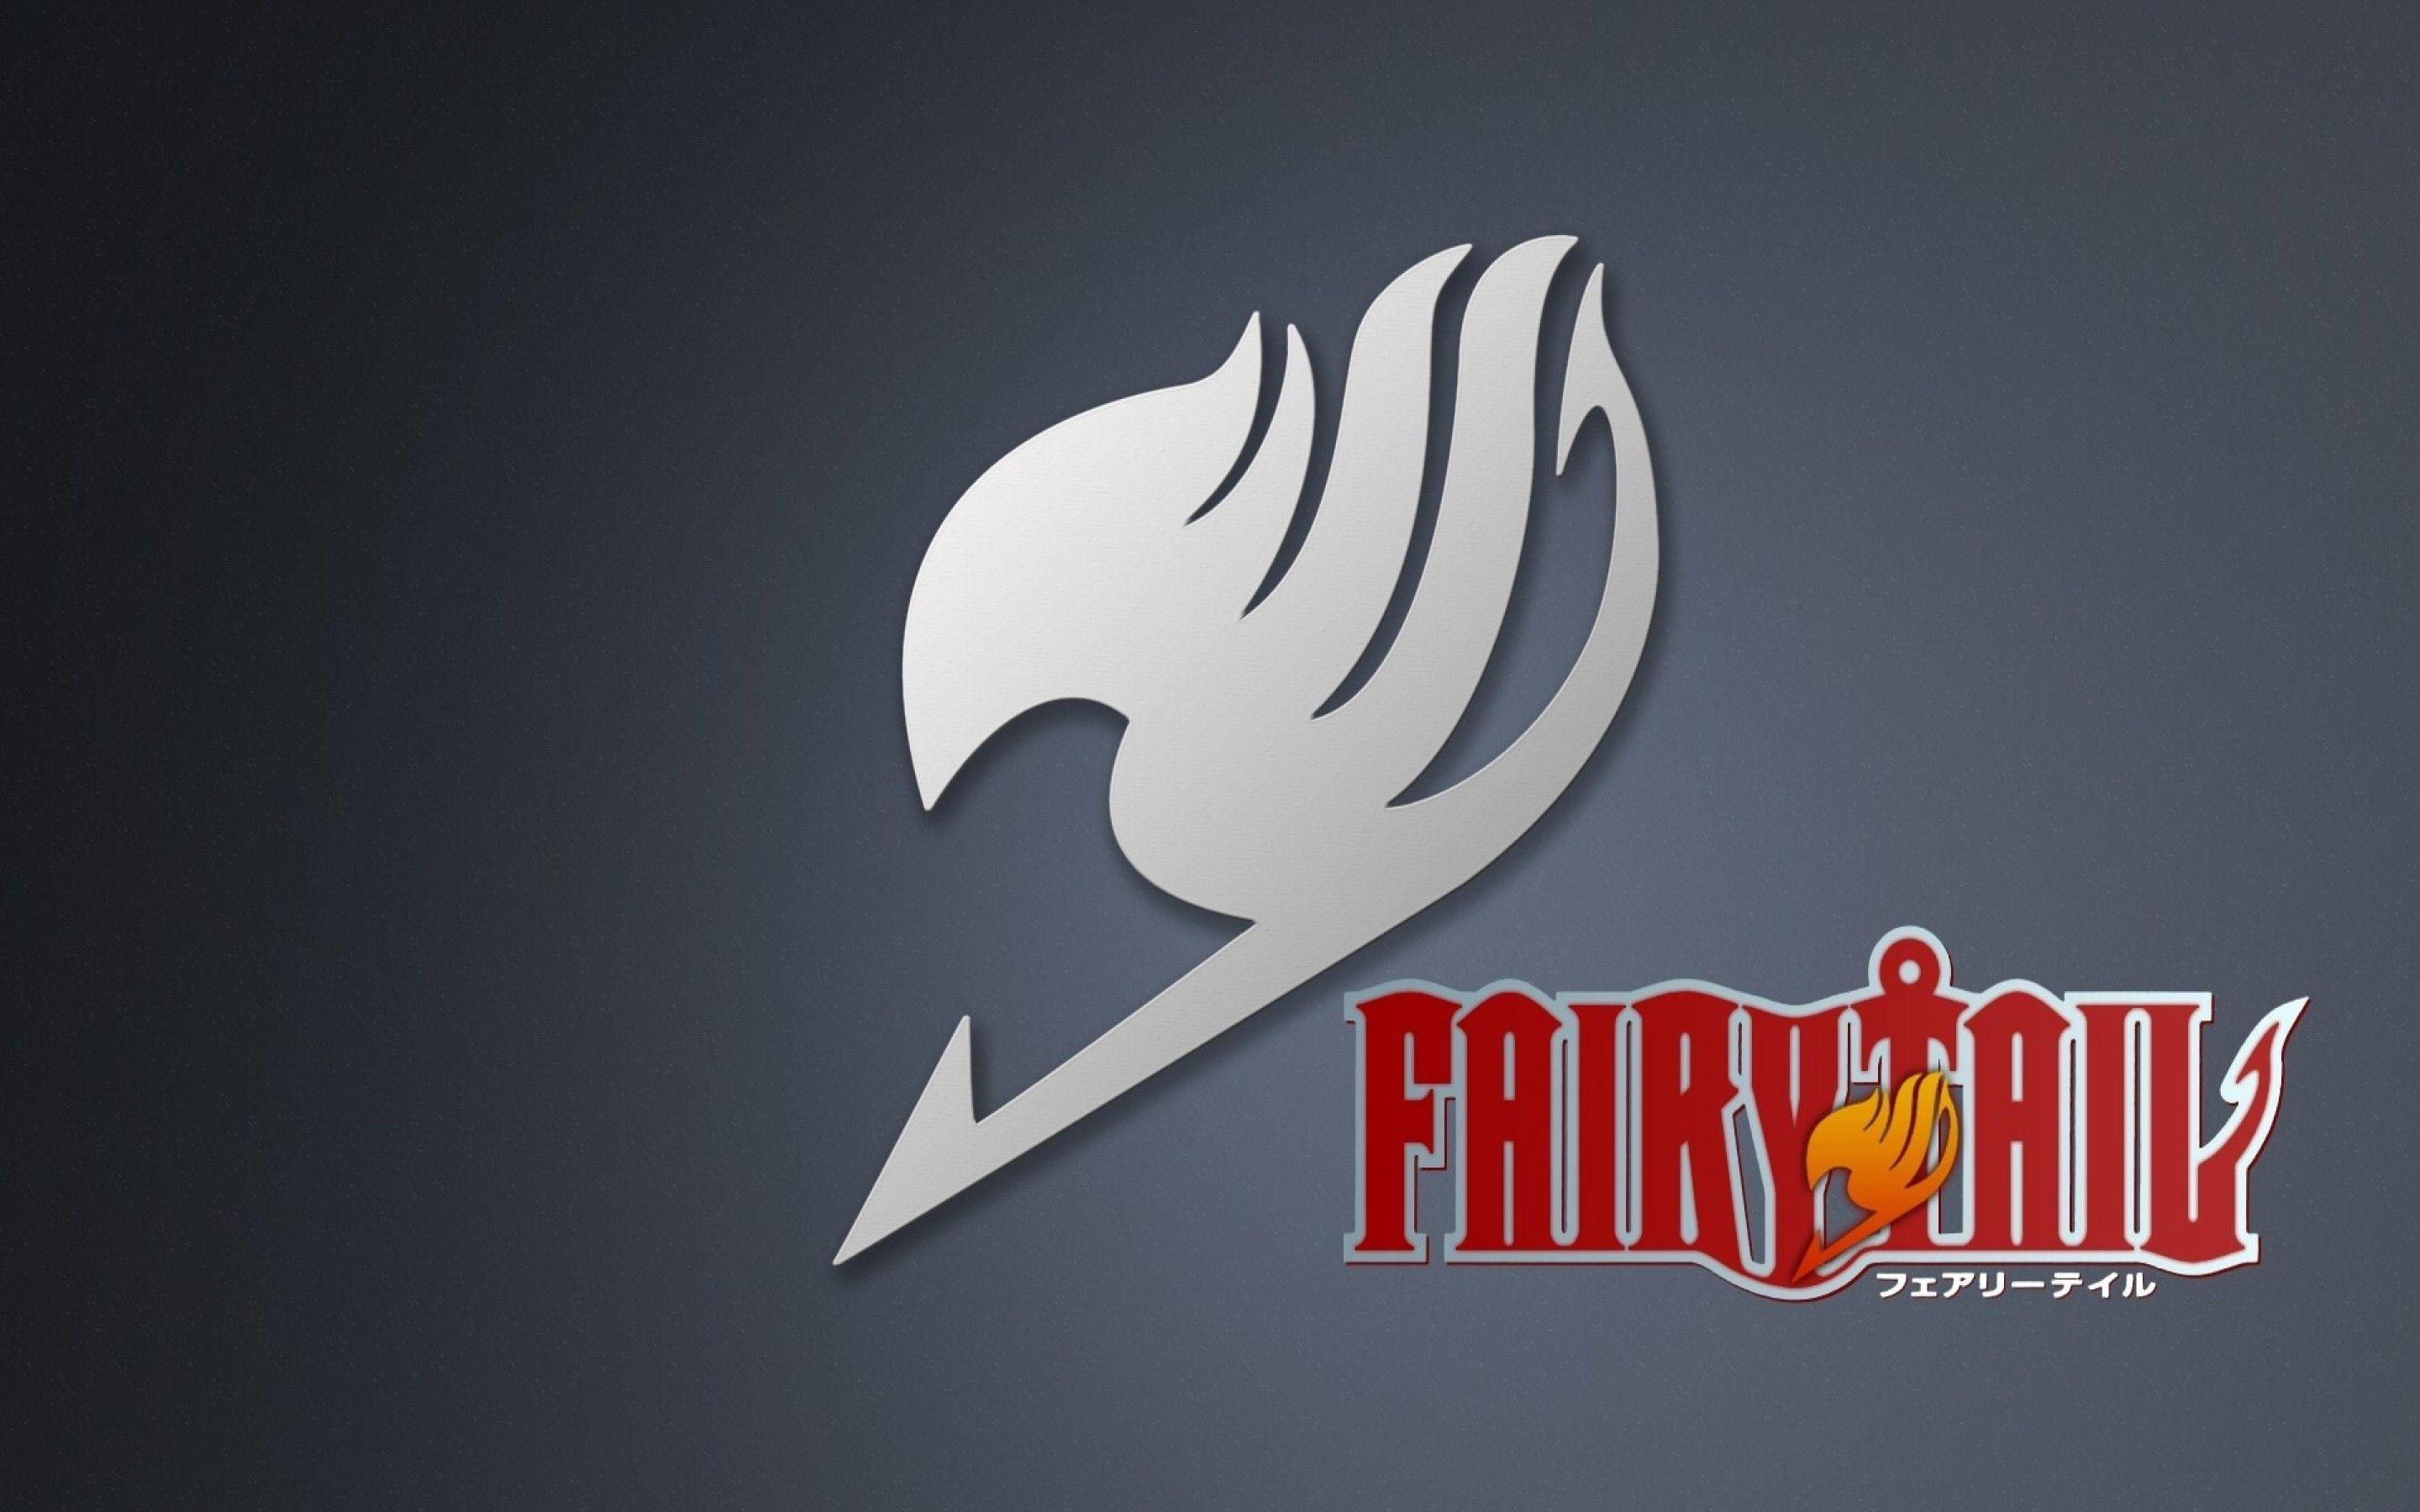 Fairy tail logo wallpapers wallpaper cave - Fairy tail emblem ...